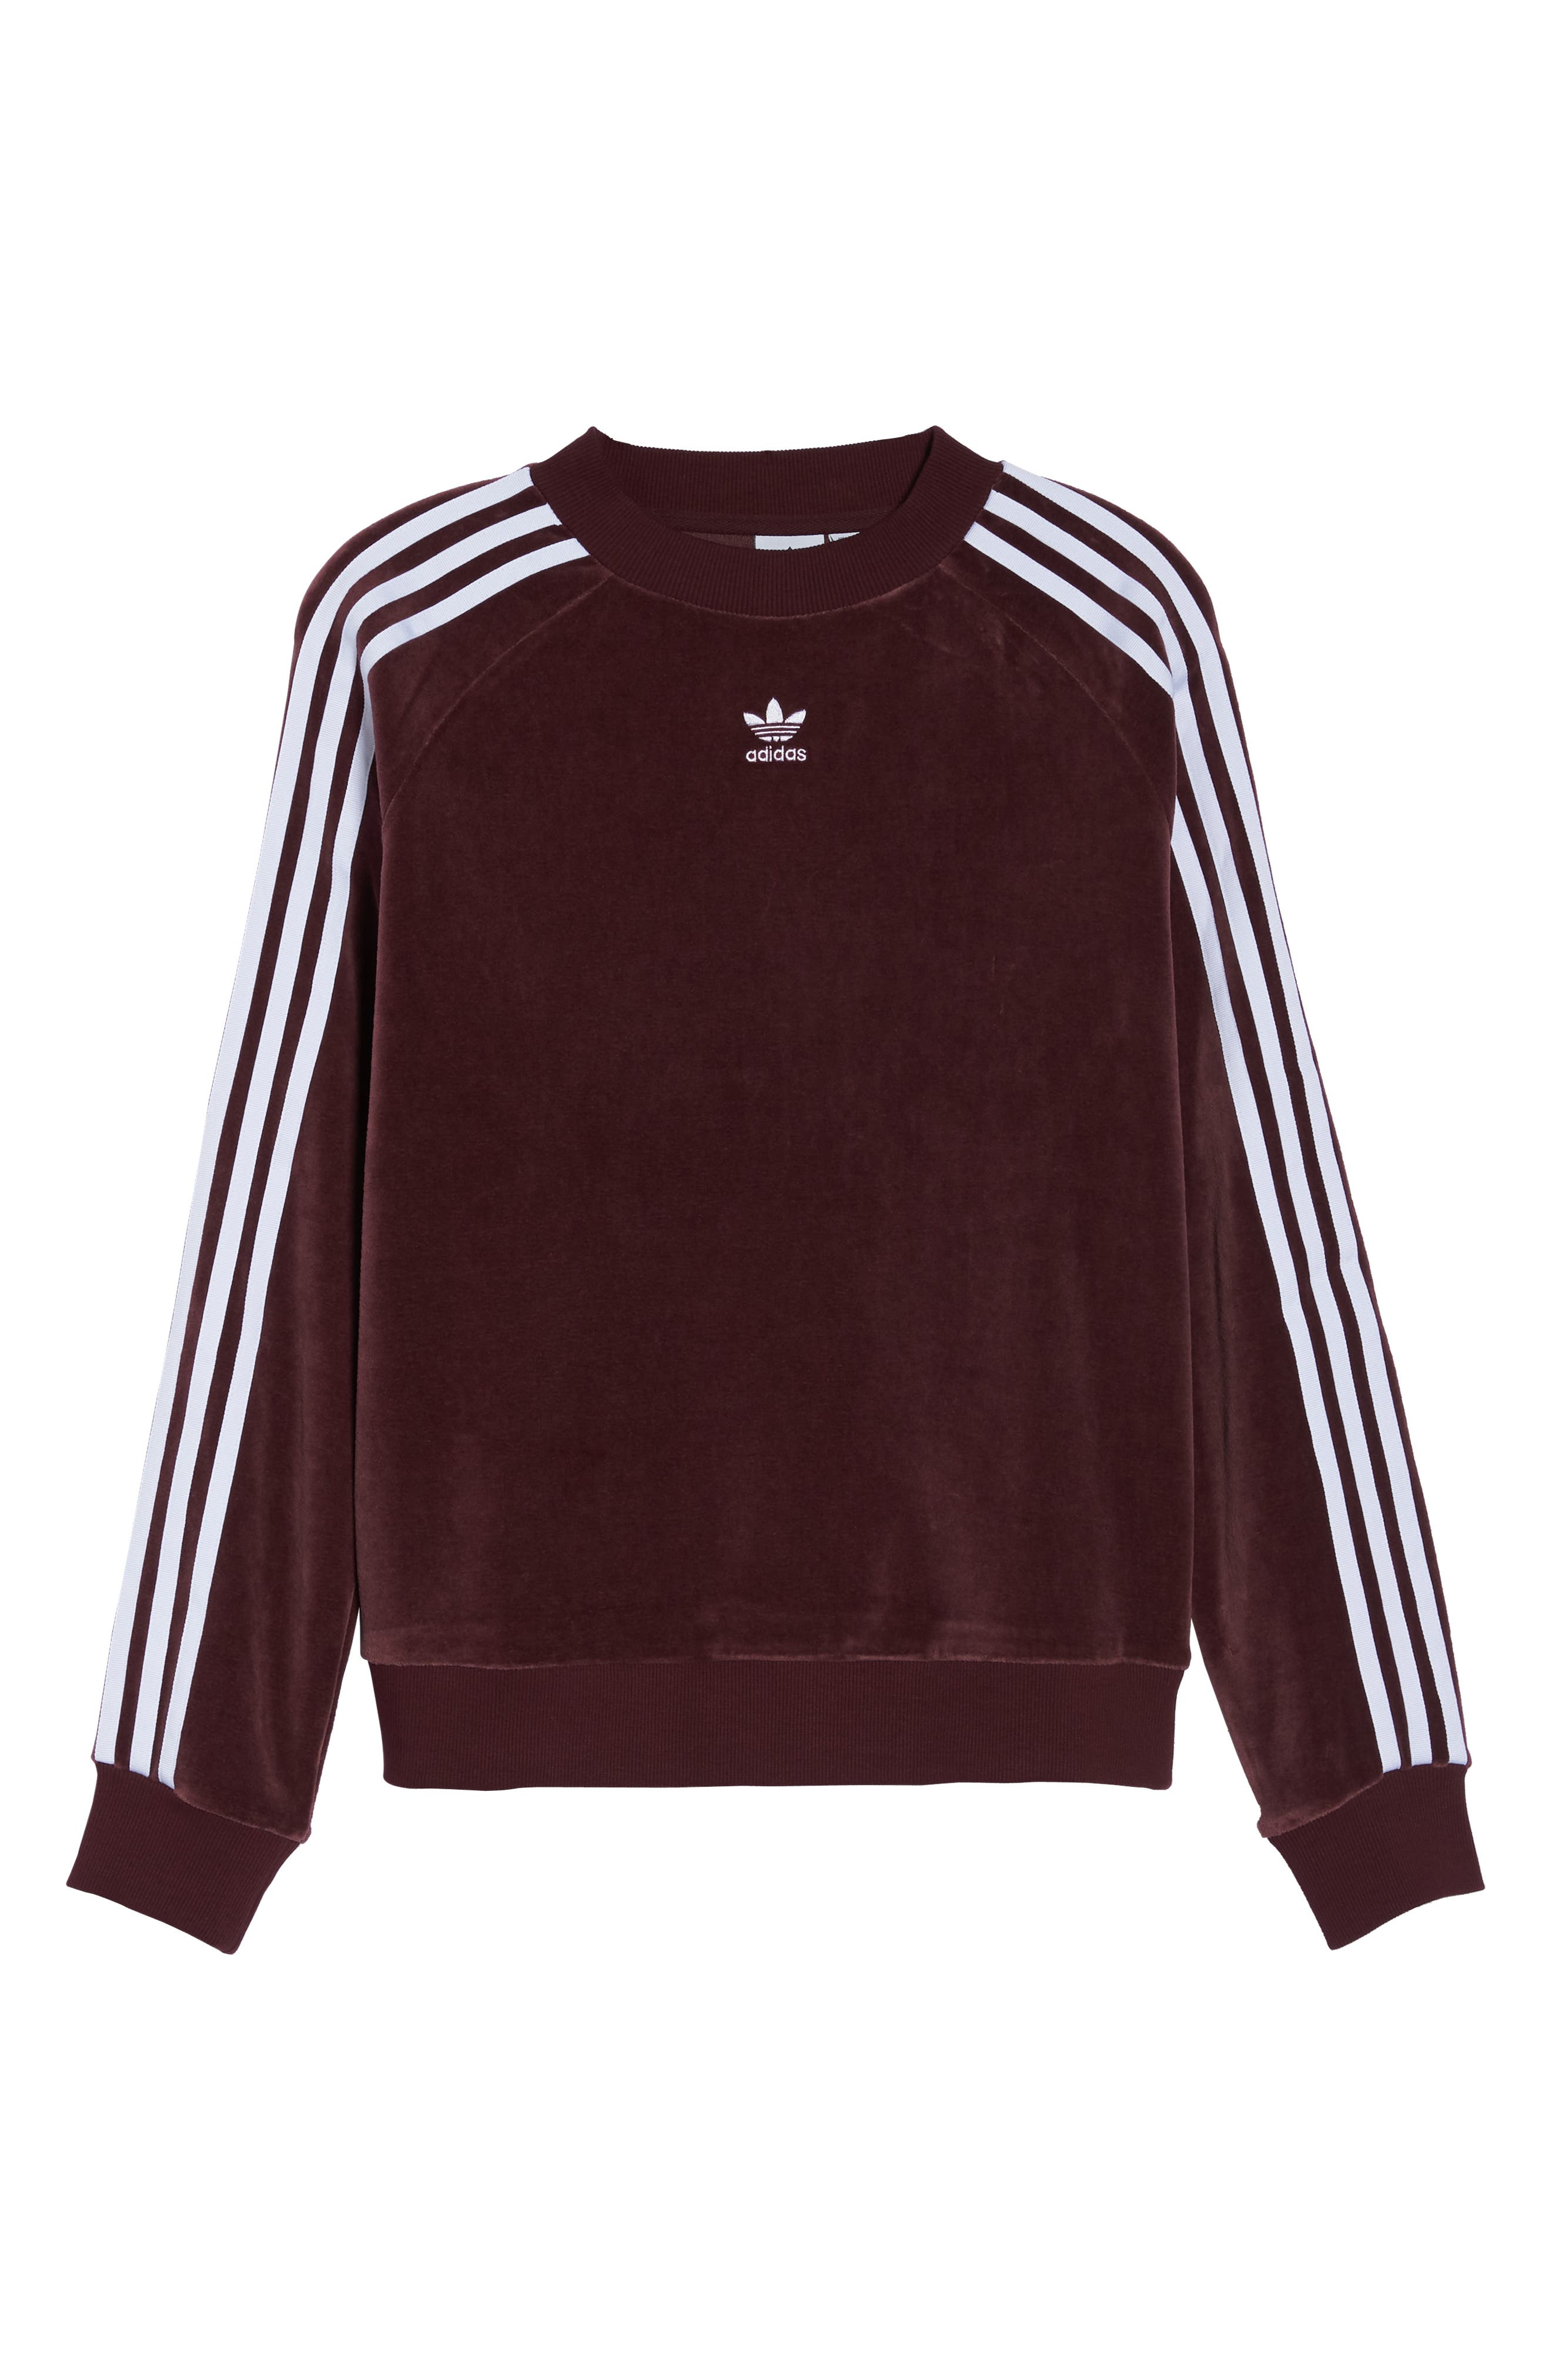 TRF Sweatshirt,                             Alternate thumbnail 7, color,                             MAROON